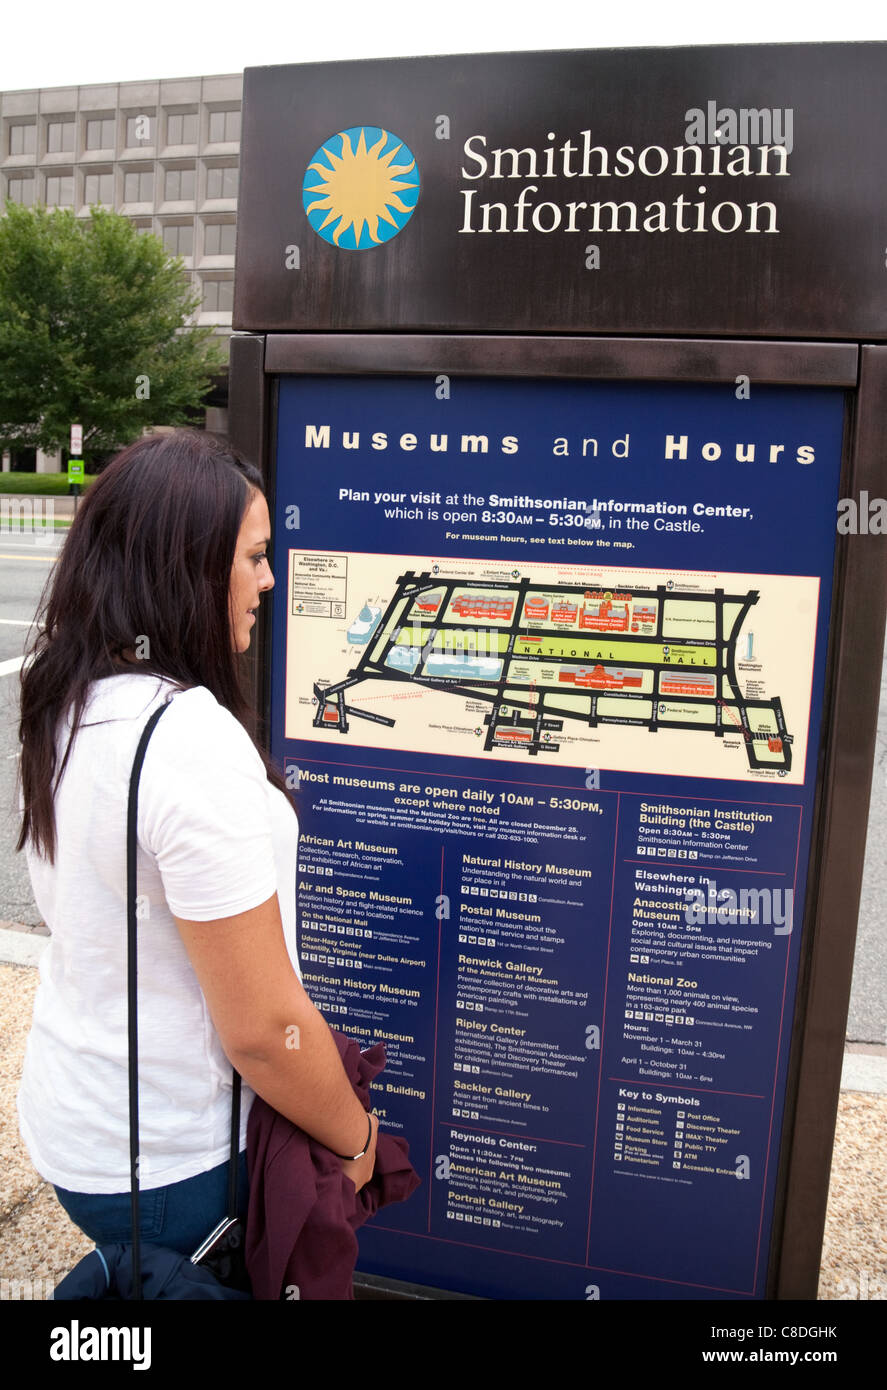 A young woman reading a tourist map of the Smithsonian institute museums, Washington DC USA Stock Photo